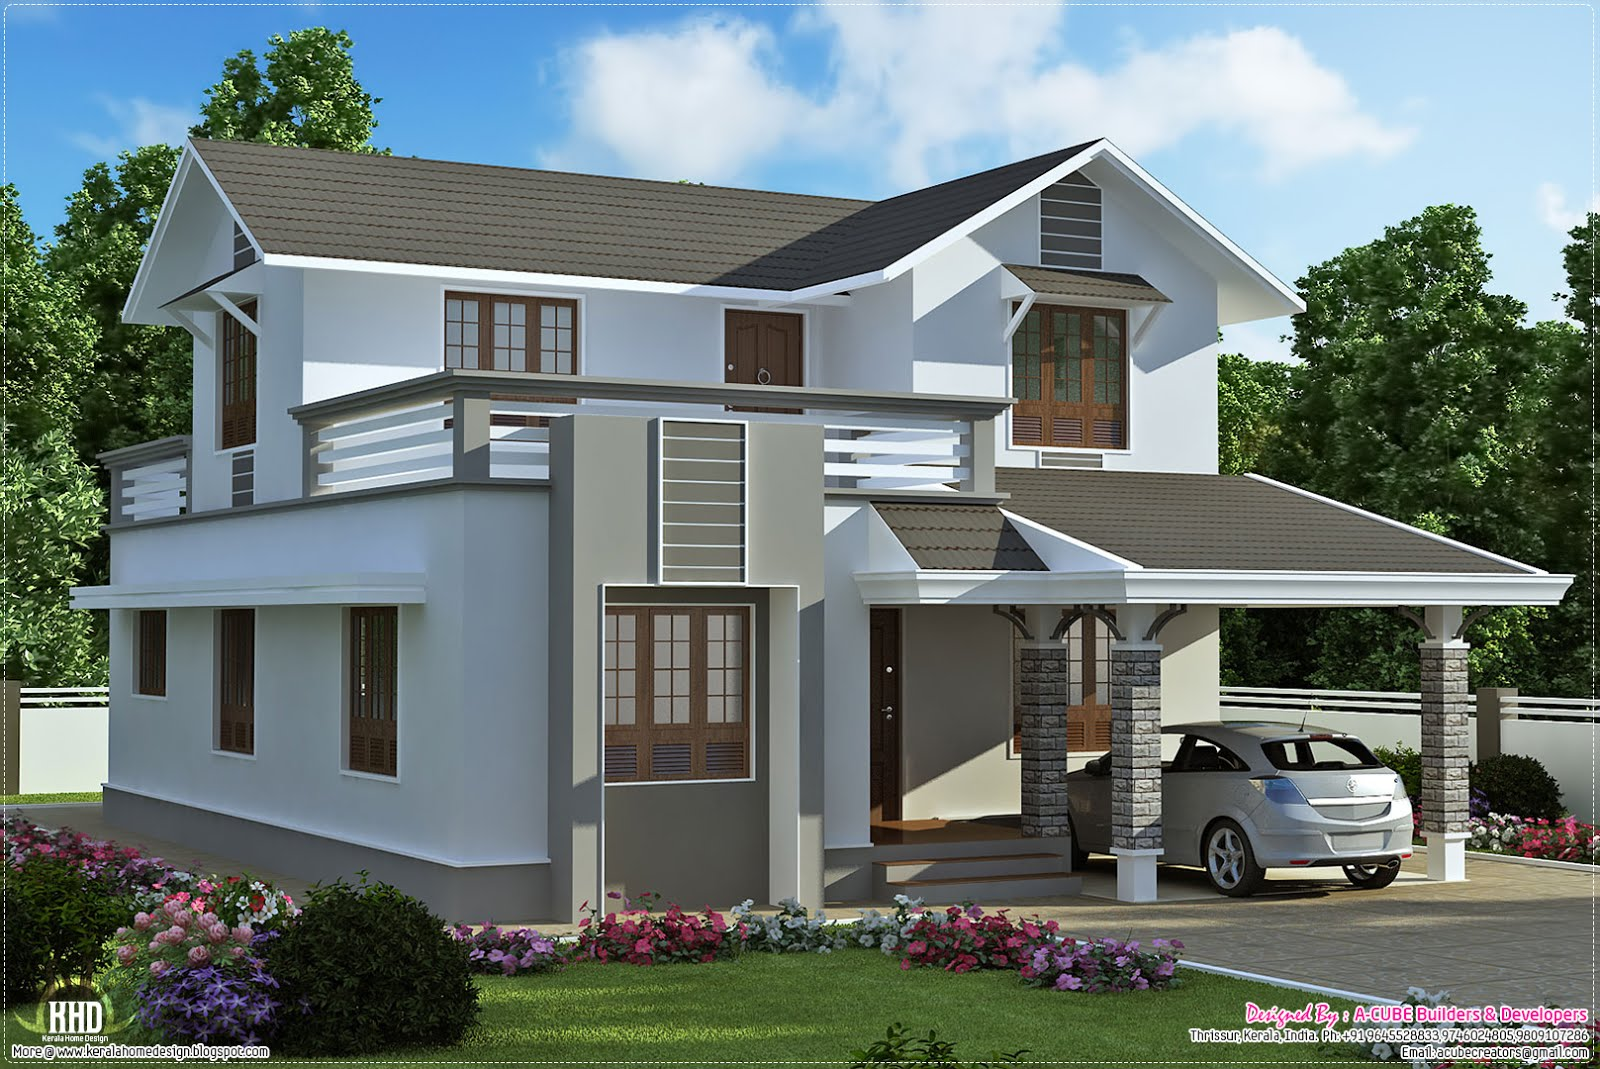 2 storey modern house designs and floor plans philippines images - Home design pic ...